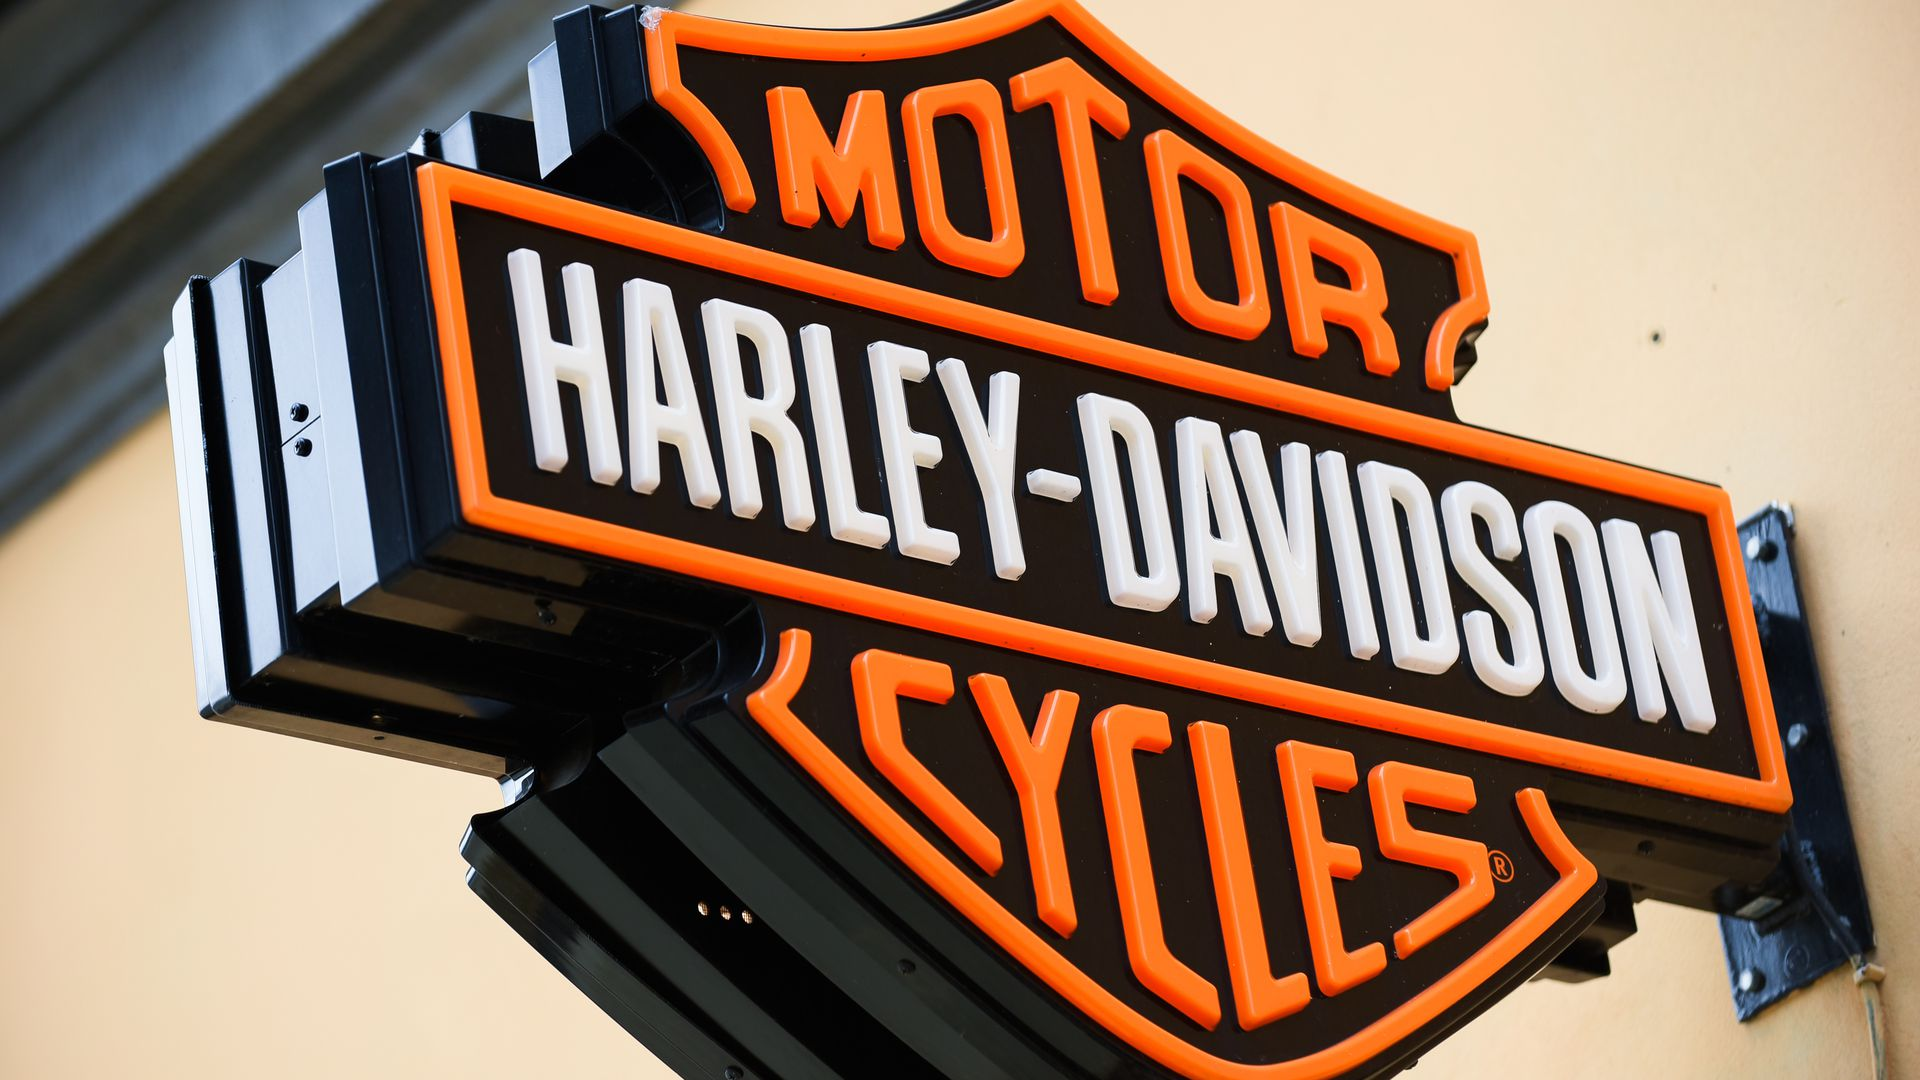 Harley Davidson abandoning American workers and blaming it on Trump